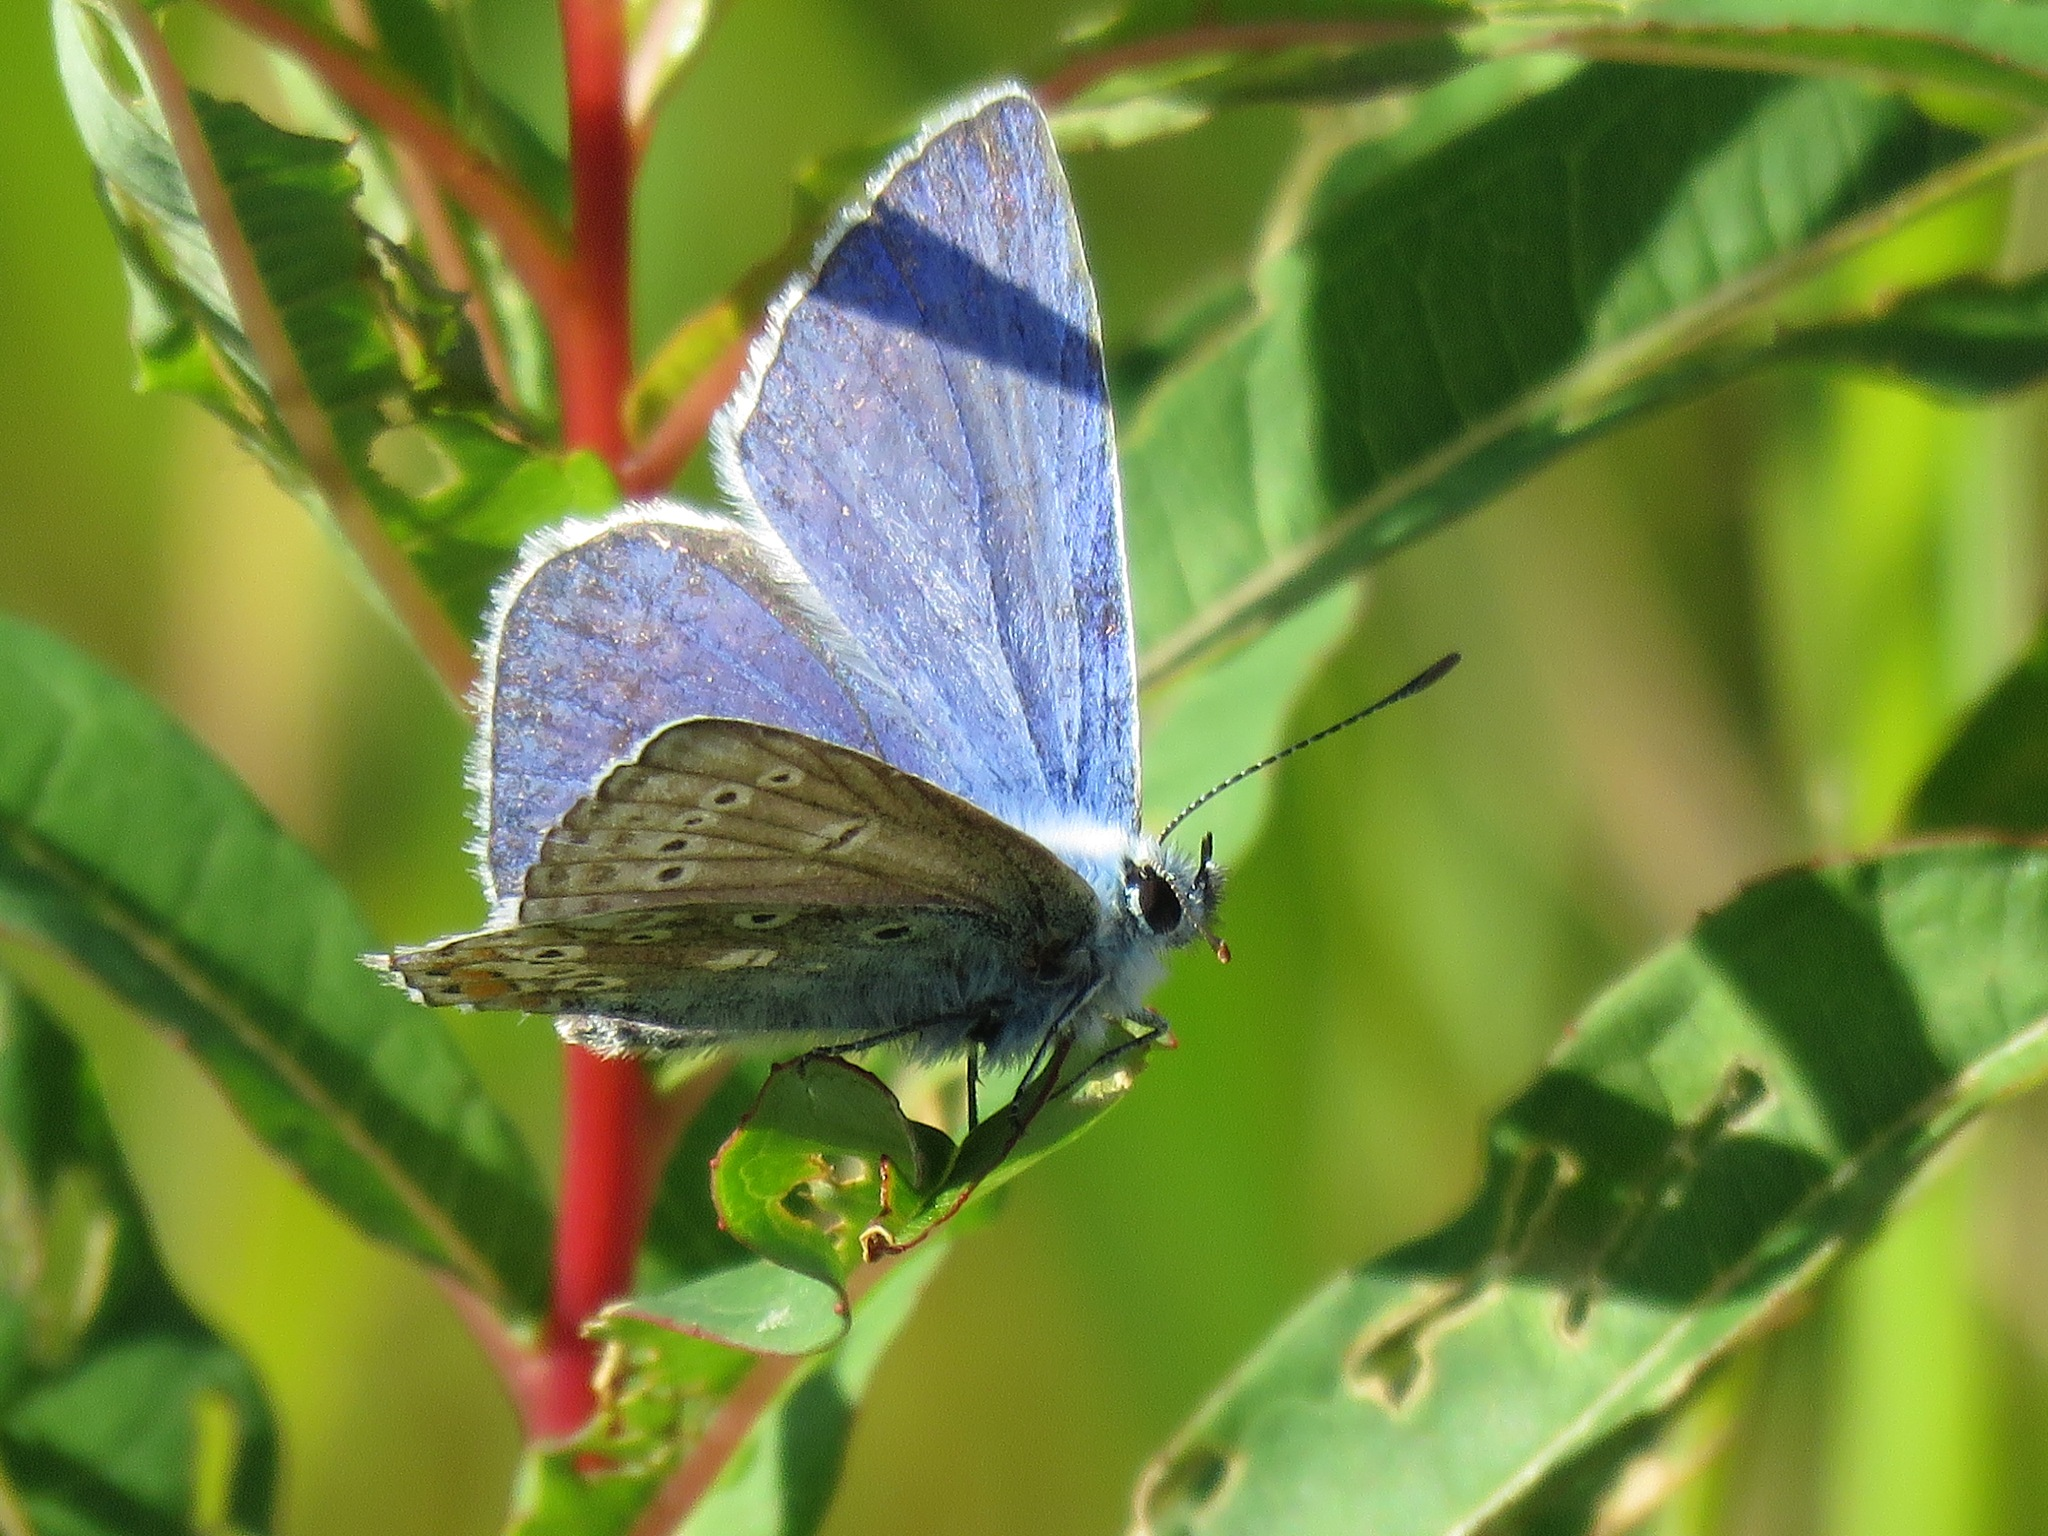 #Bluewing by marit